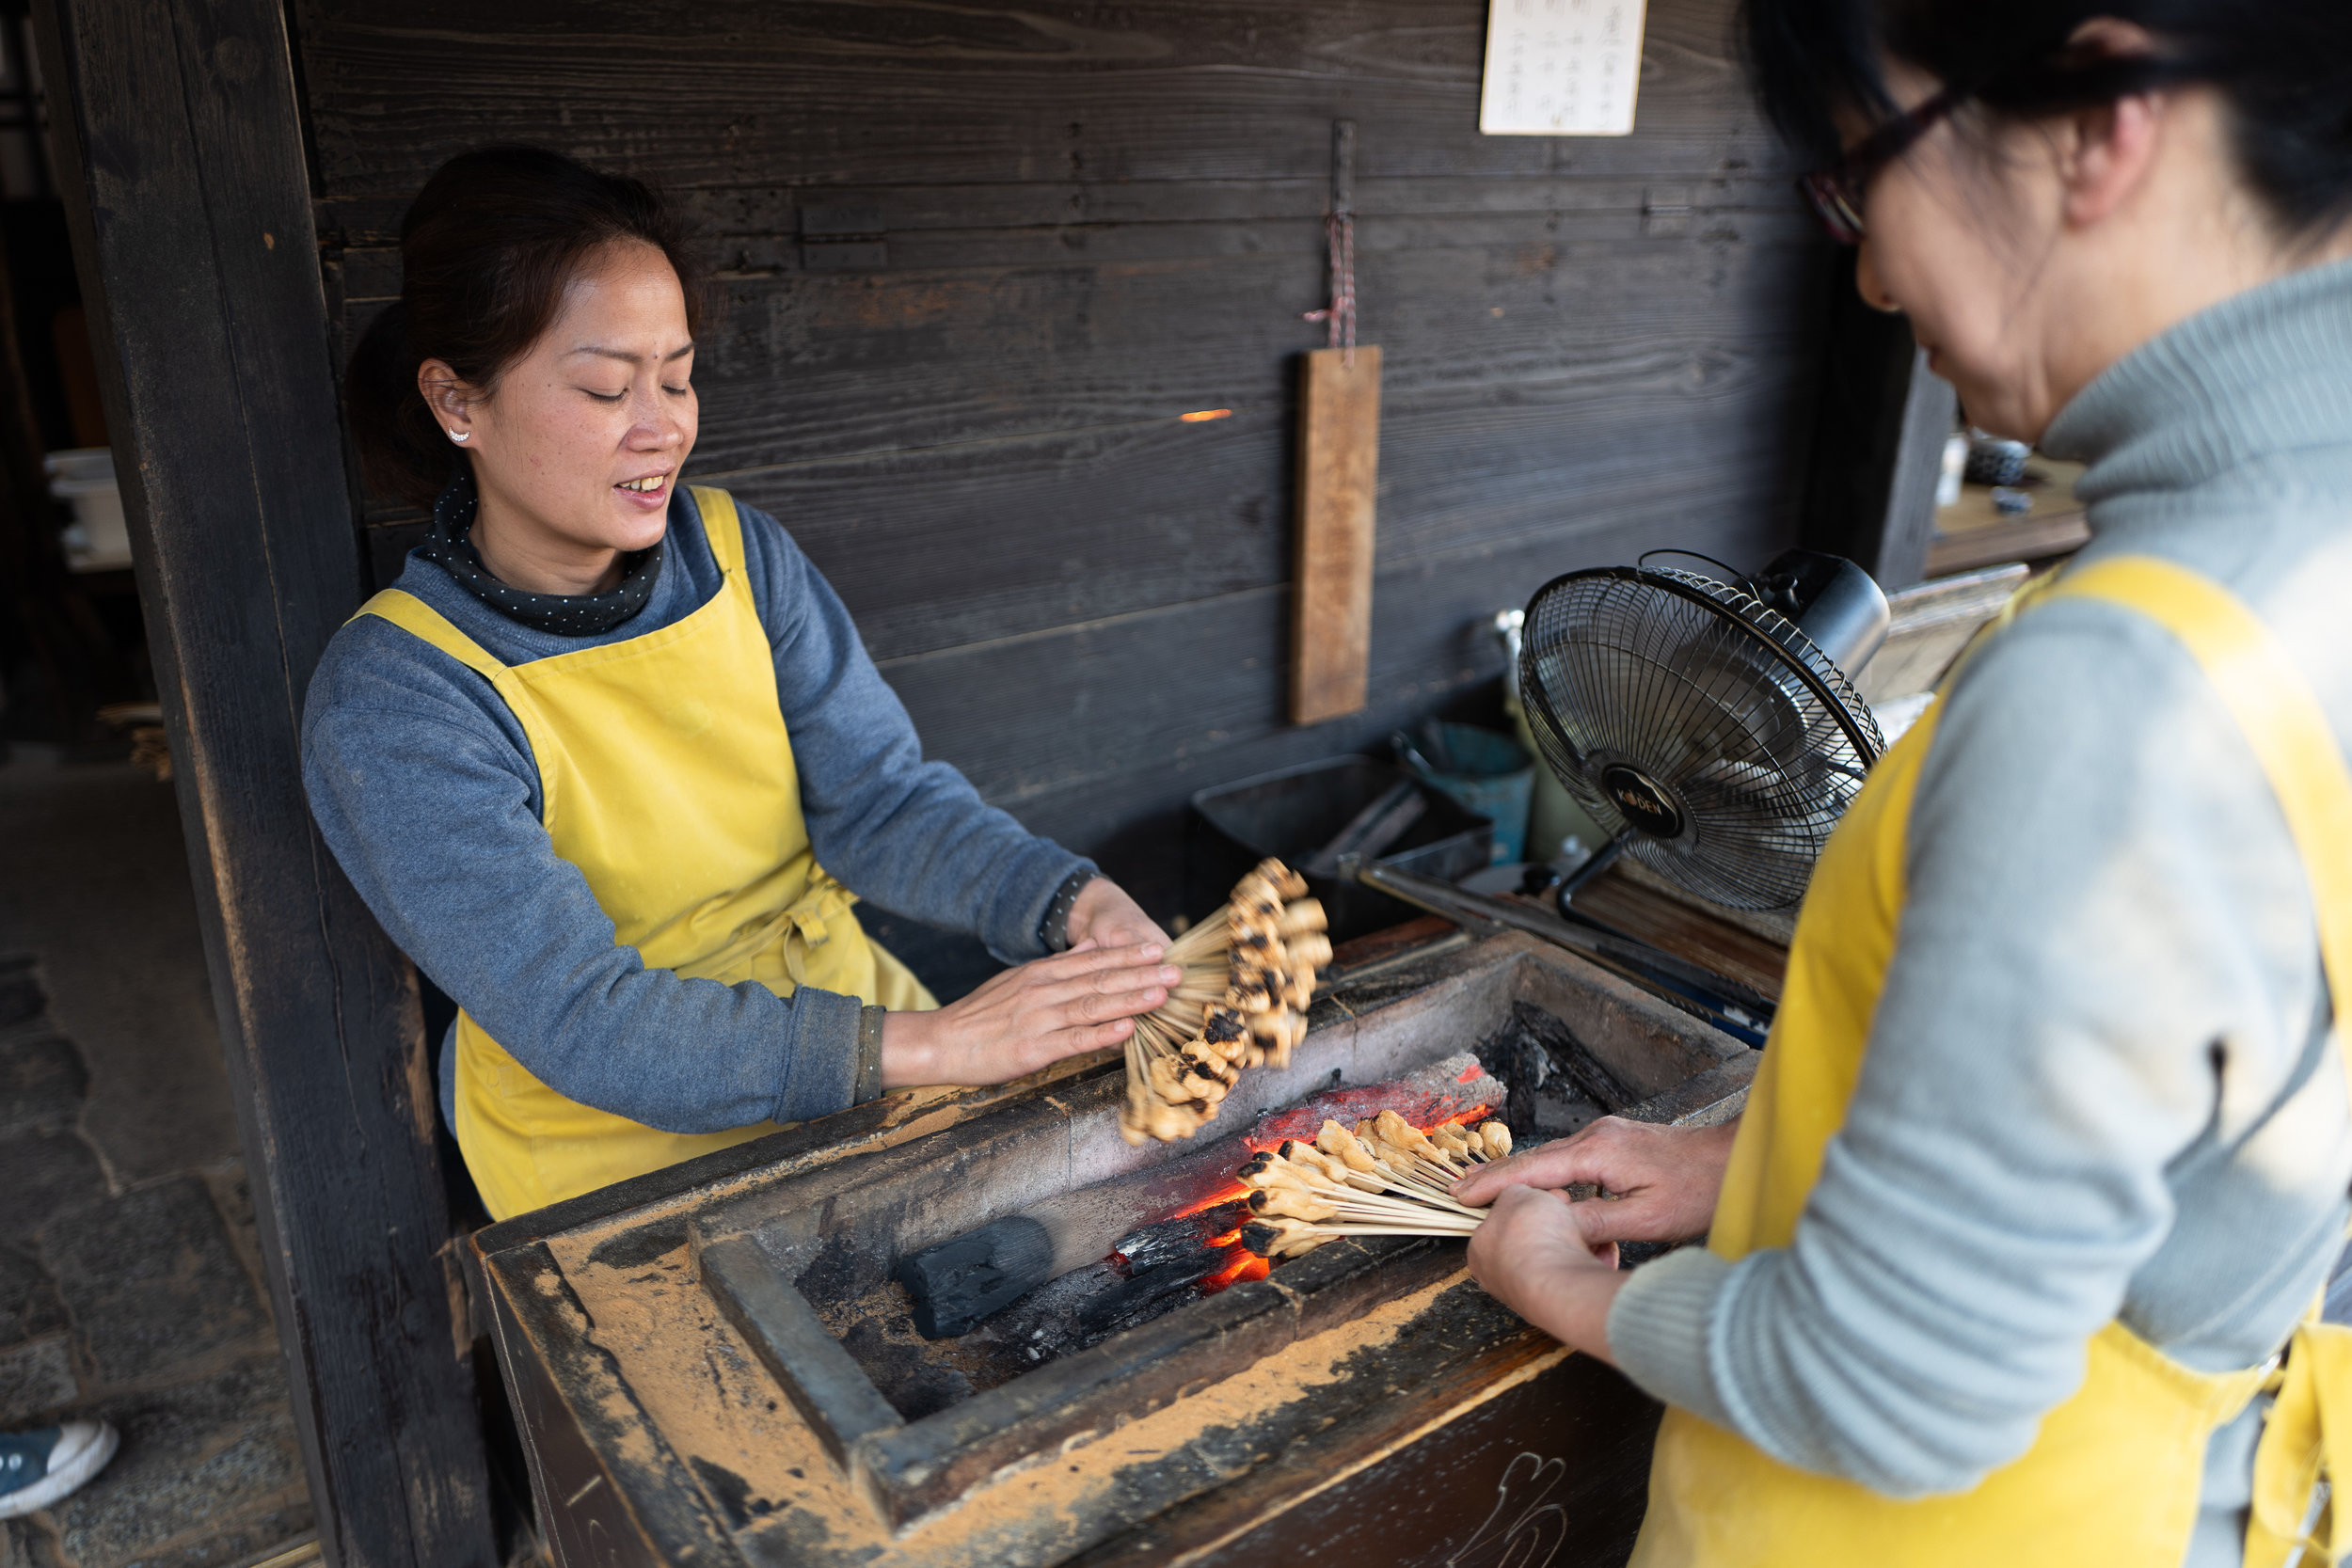 The ladies at Ichiwa grilling aburimochi